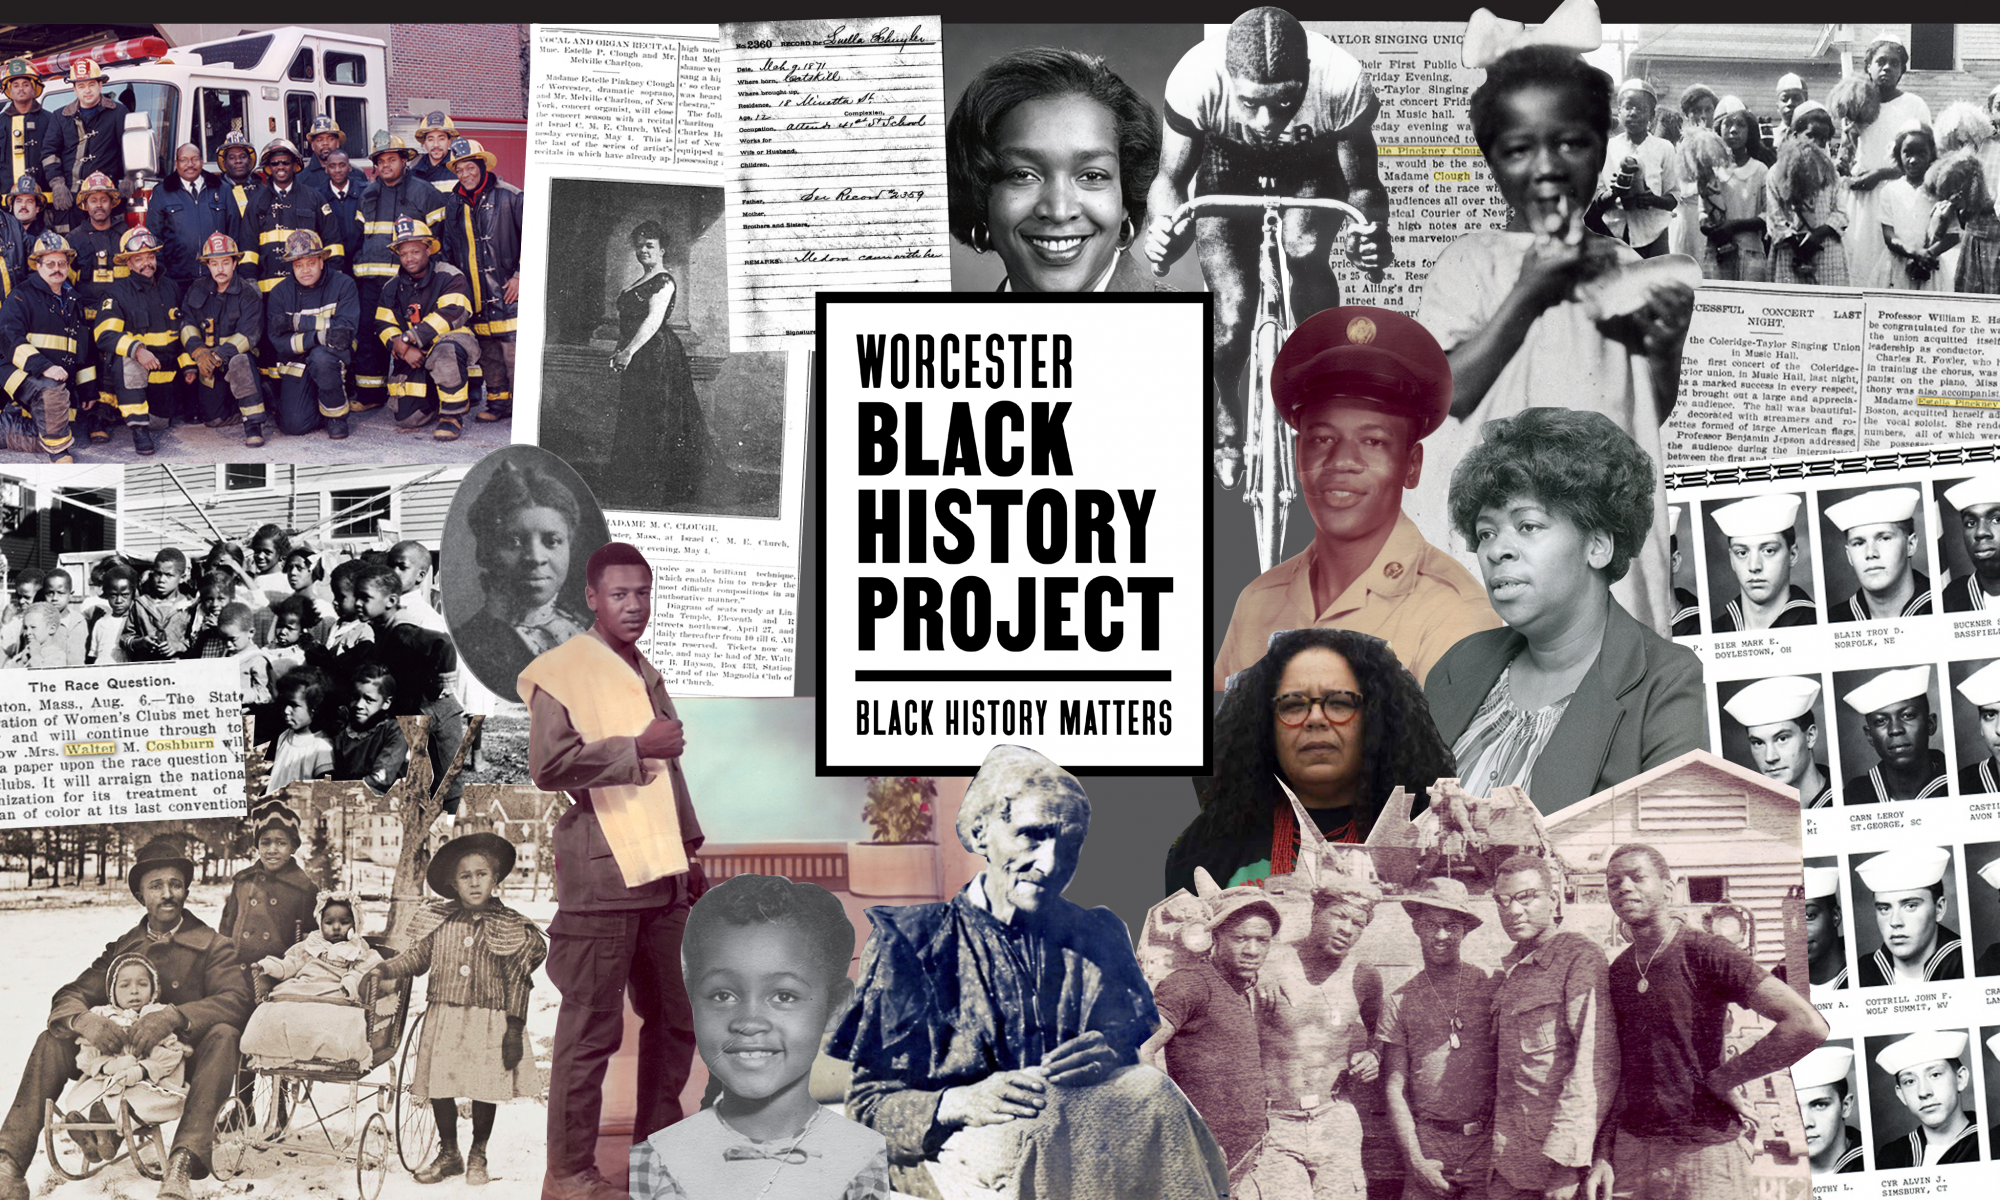 Worcester Black History Project